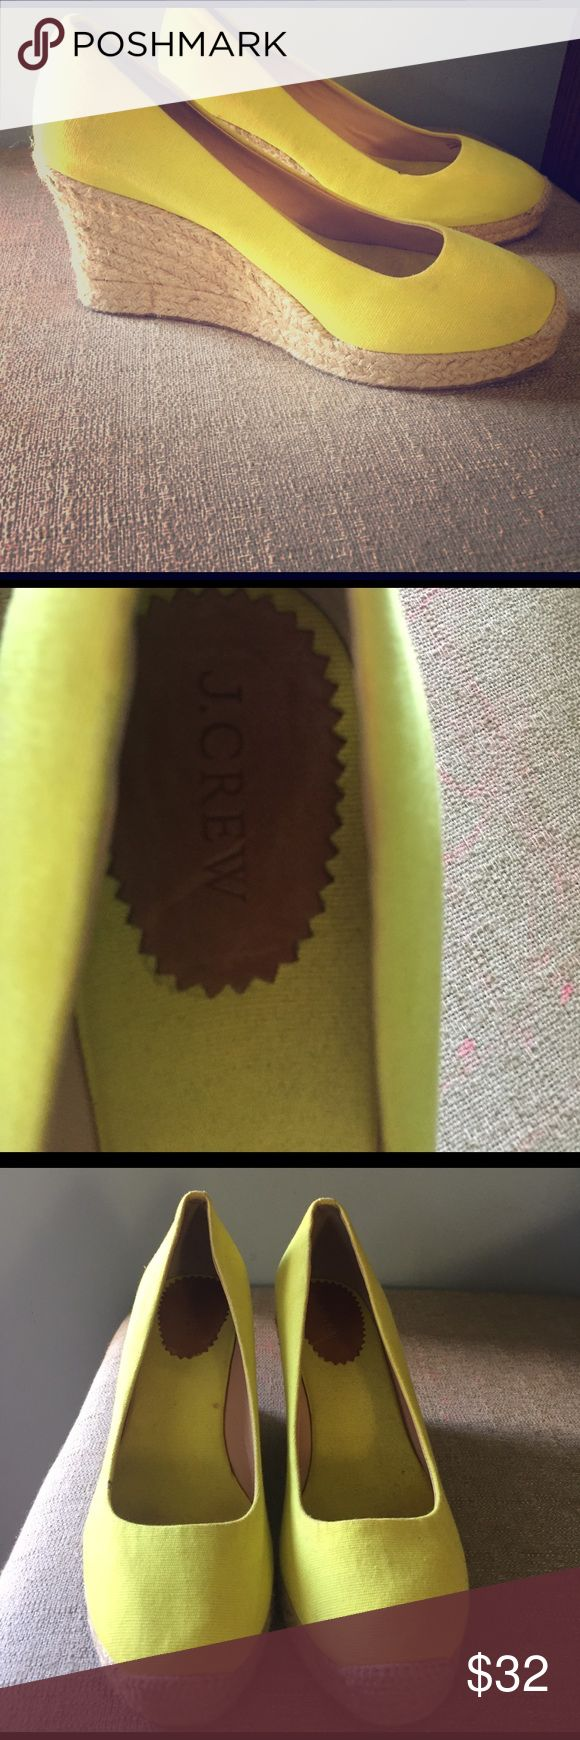 """J Crew Neon yellow espadrilles wedges size 10 Beautiful J Crew neon yellow espadrilles. 3.5"""" wedge. Worn once. Super fun shoe and is the perfect accessory to brighten up any outfit!! Great spring/summer shoe ☀️☀️ J. Crew Shoes Espadrilles"""